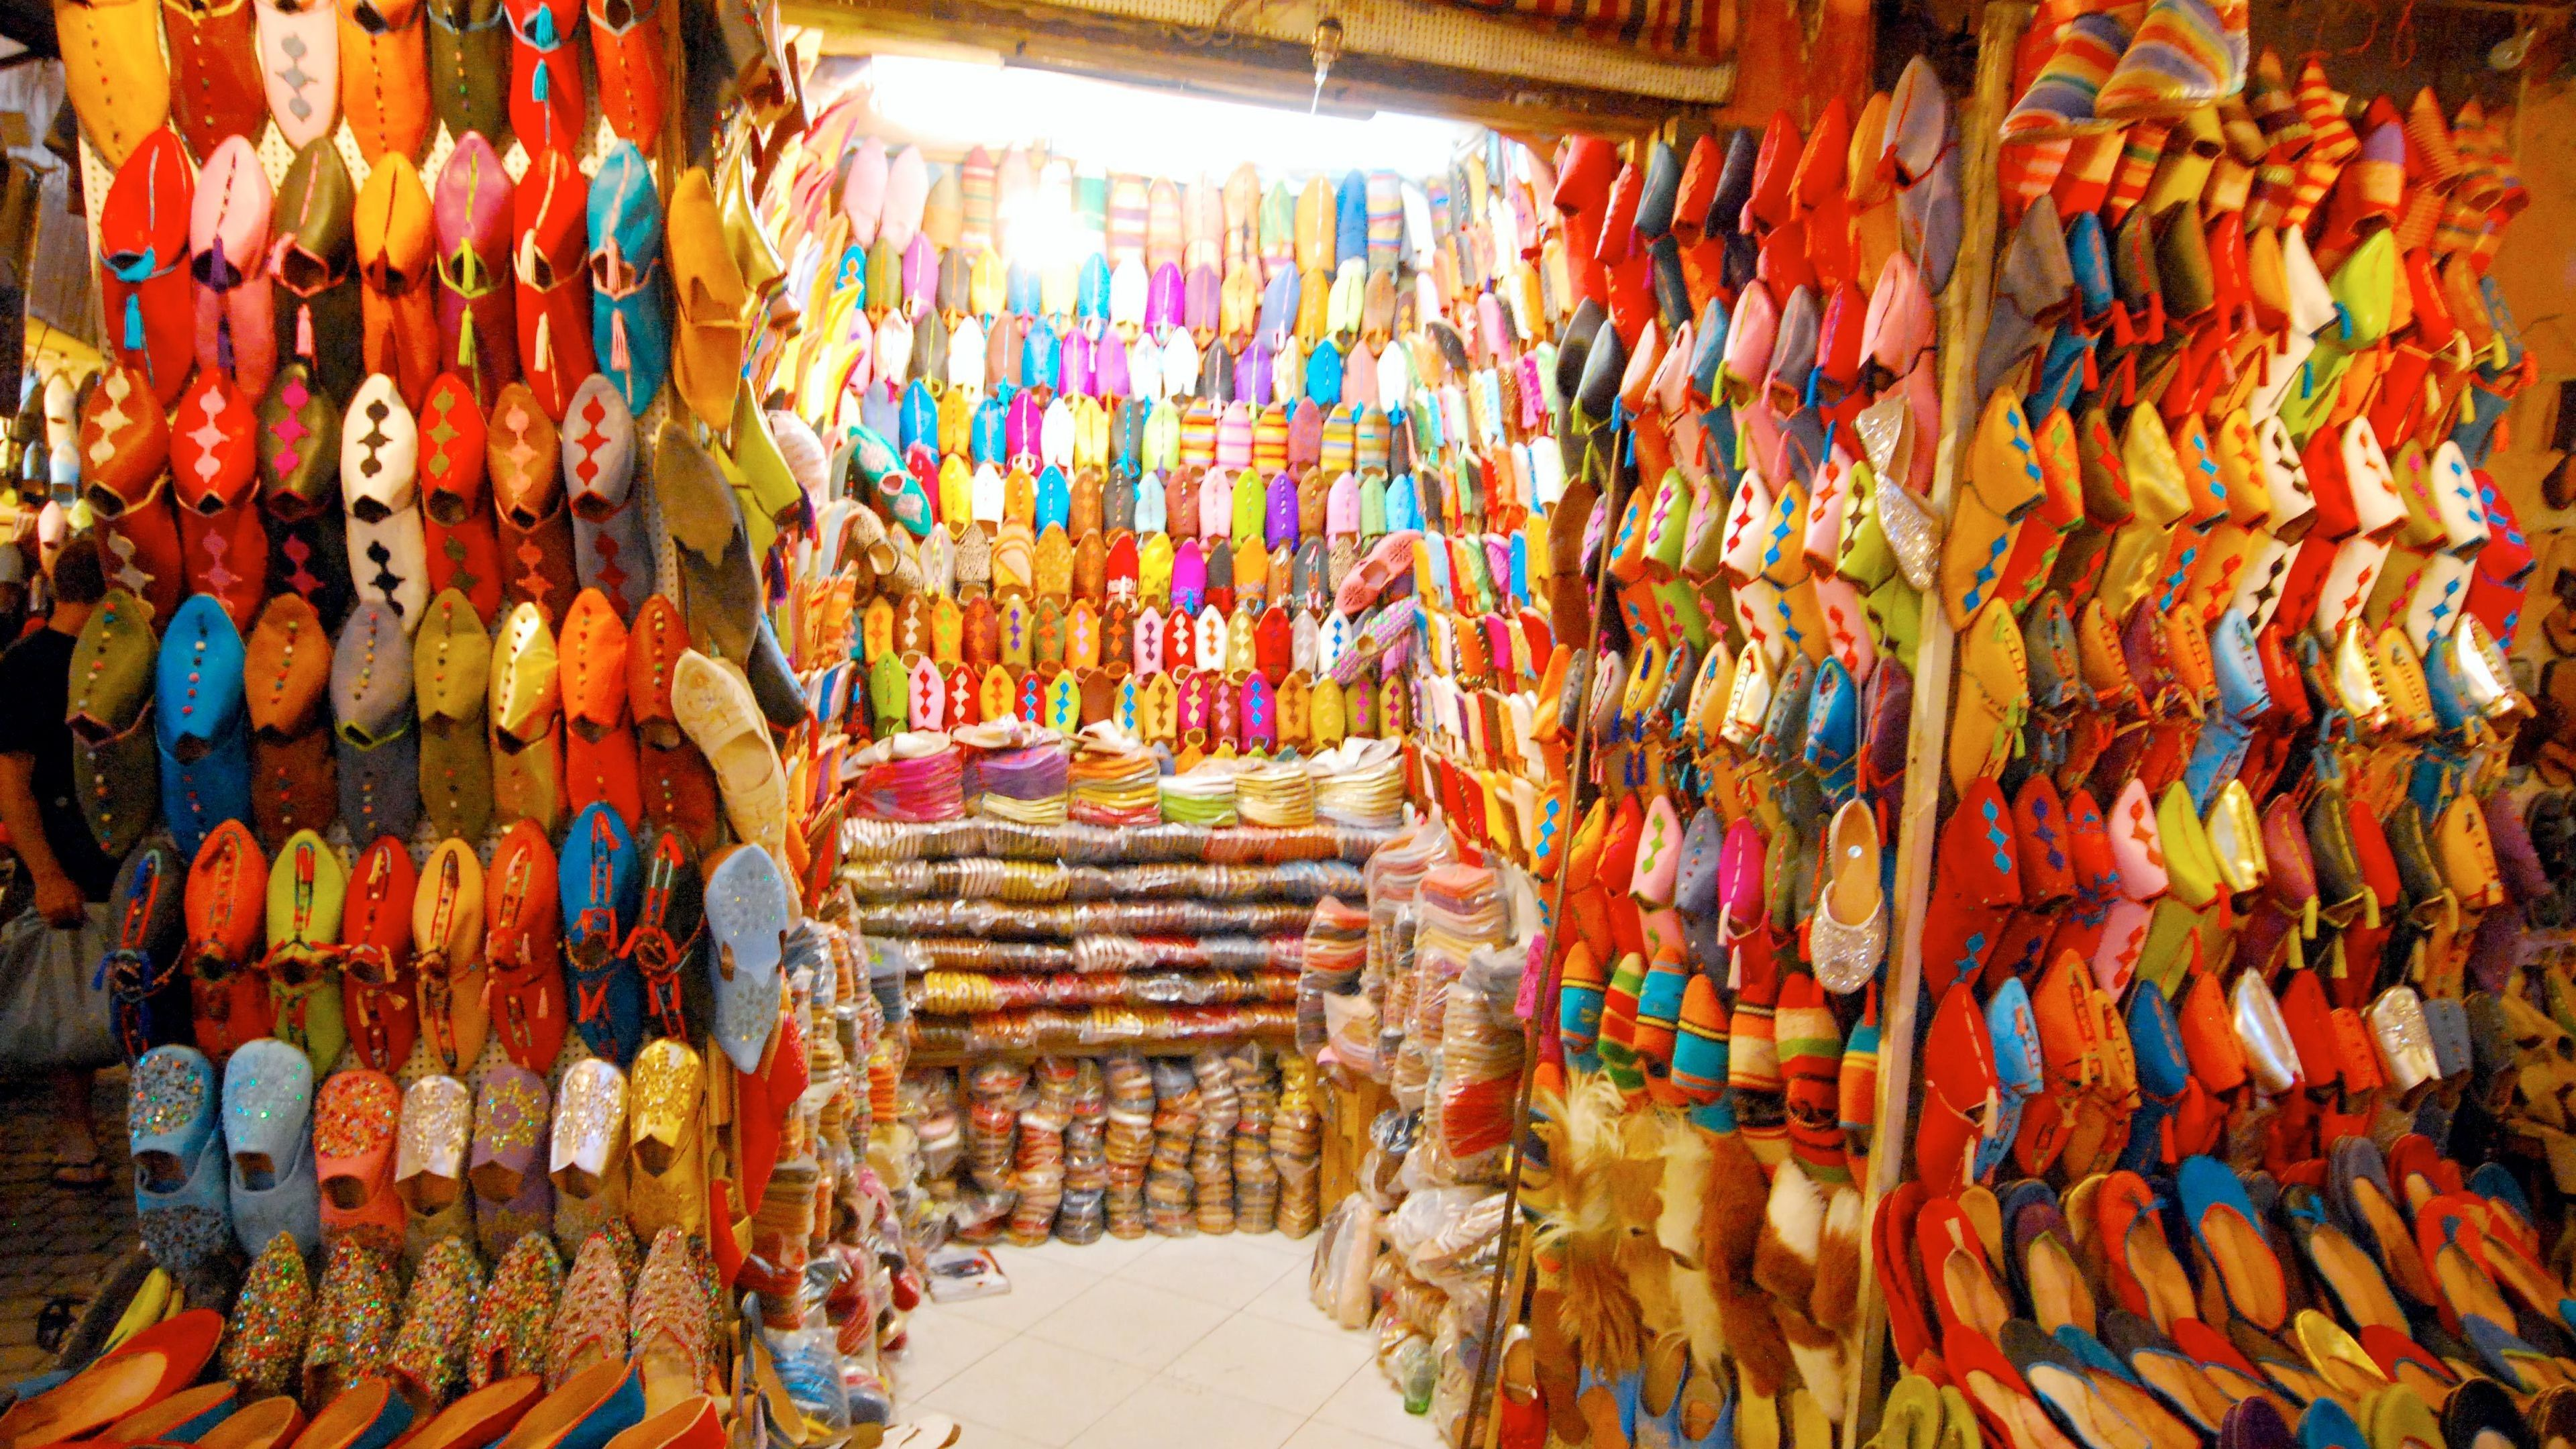 Colorful handmade shoes at a market in Marrakech